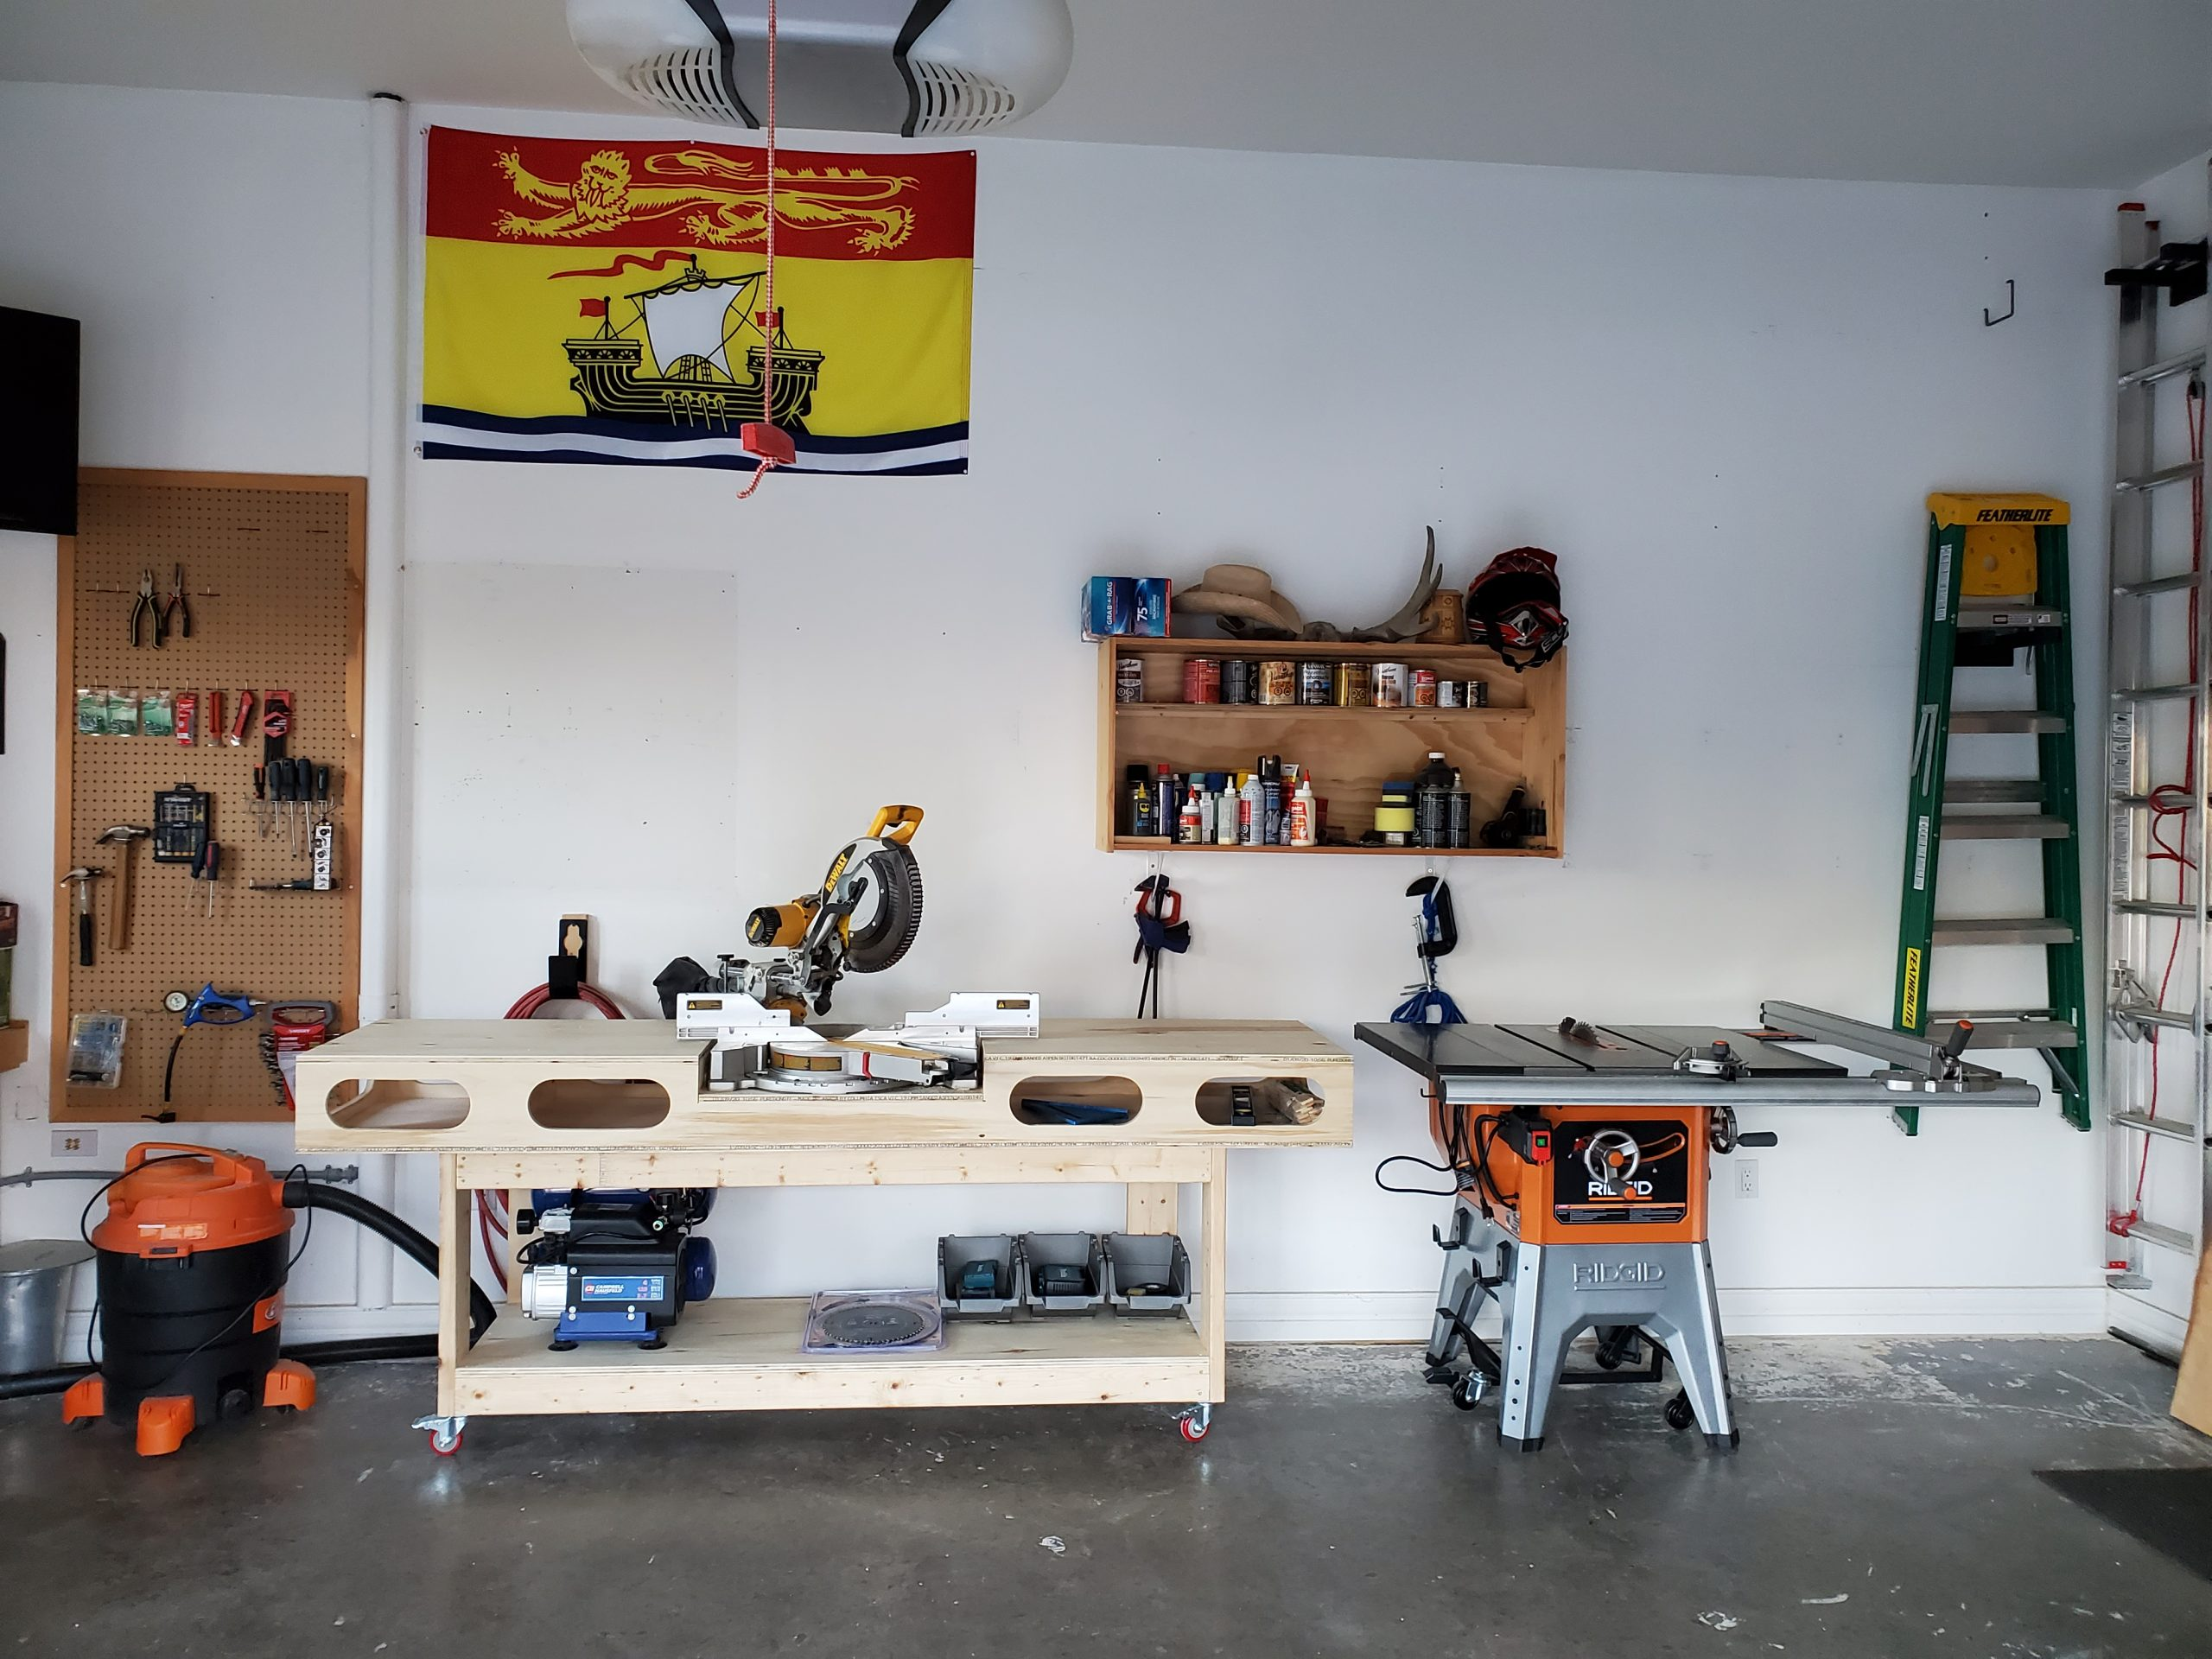 Table-Saw arrival